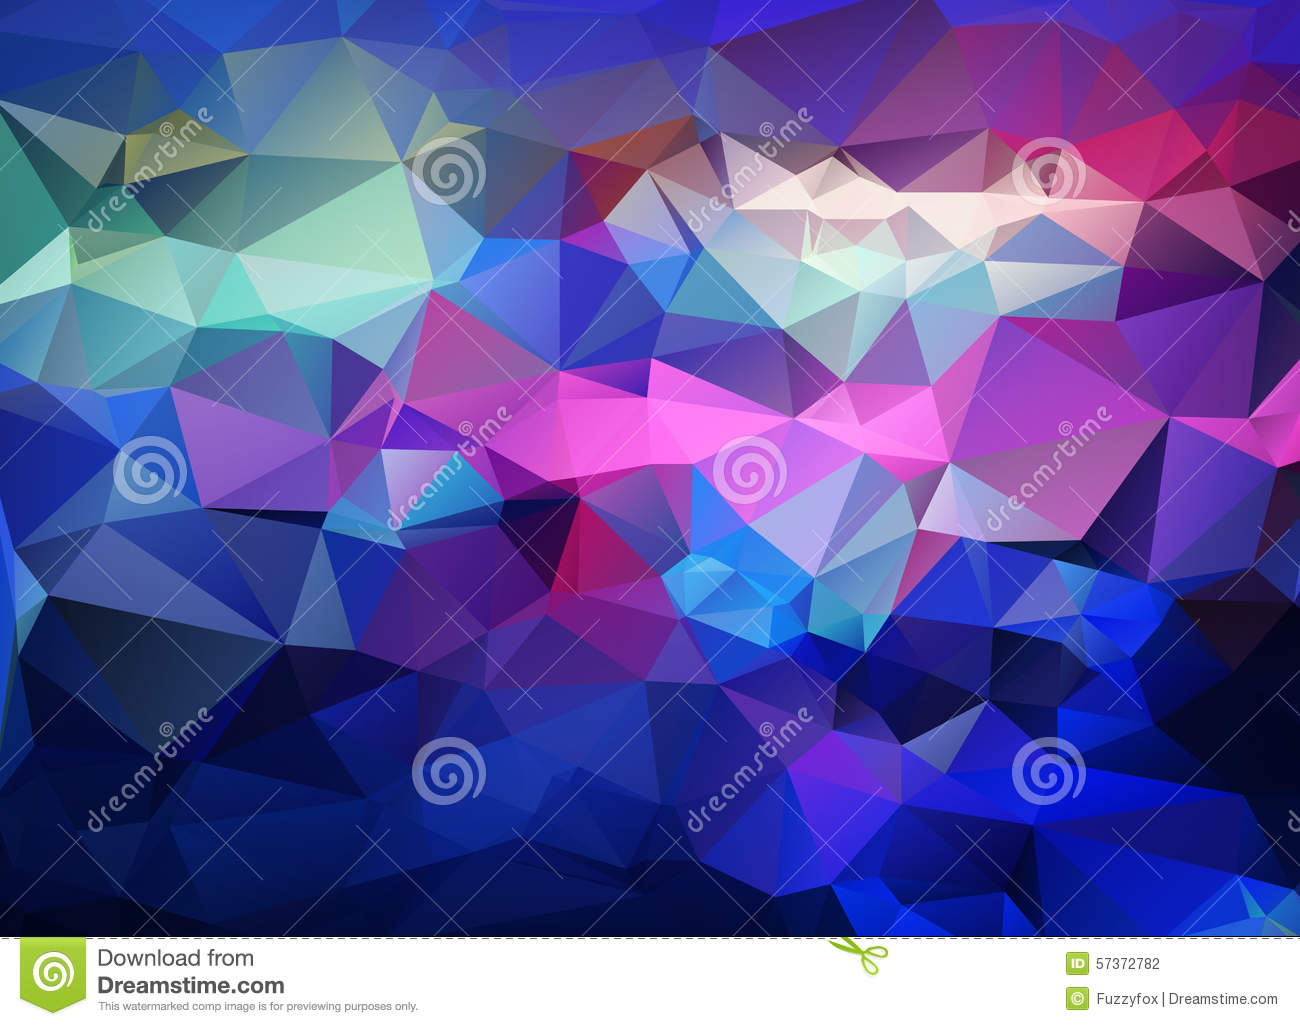 polygon shape abstract design - photo #23